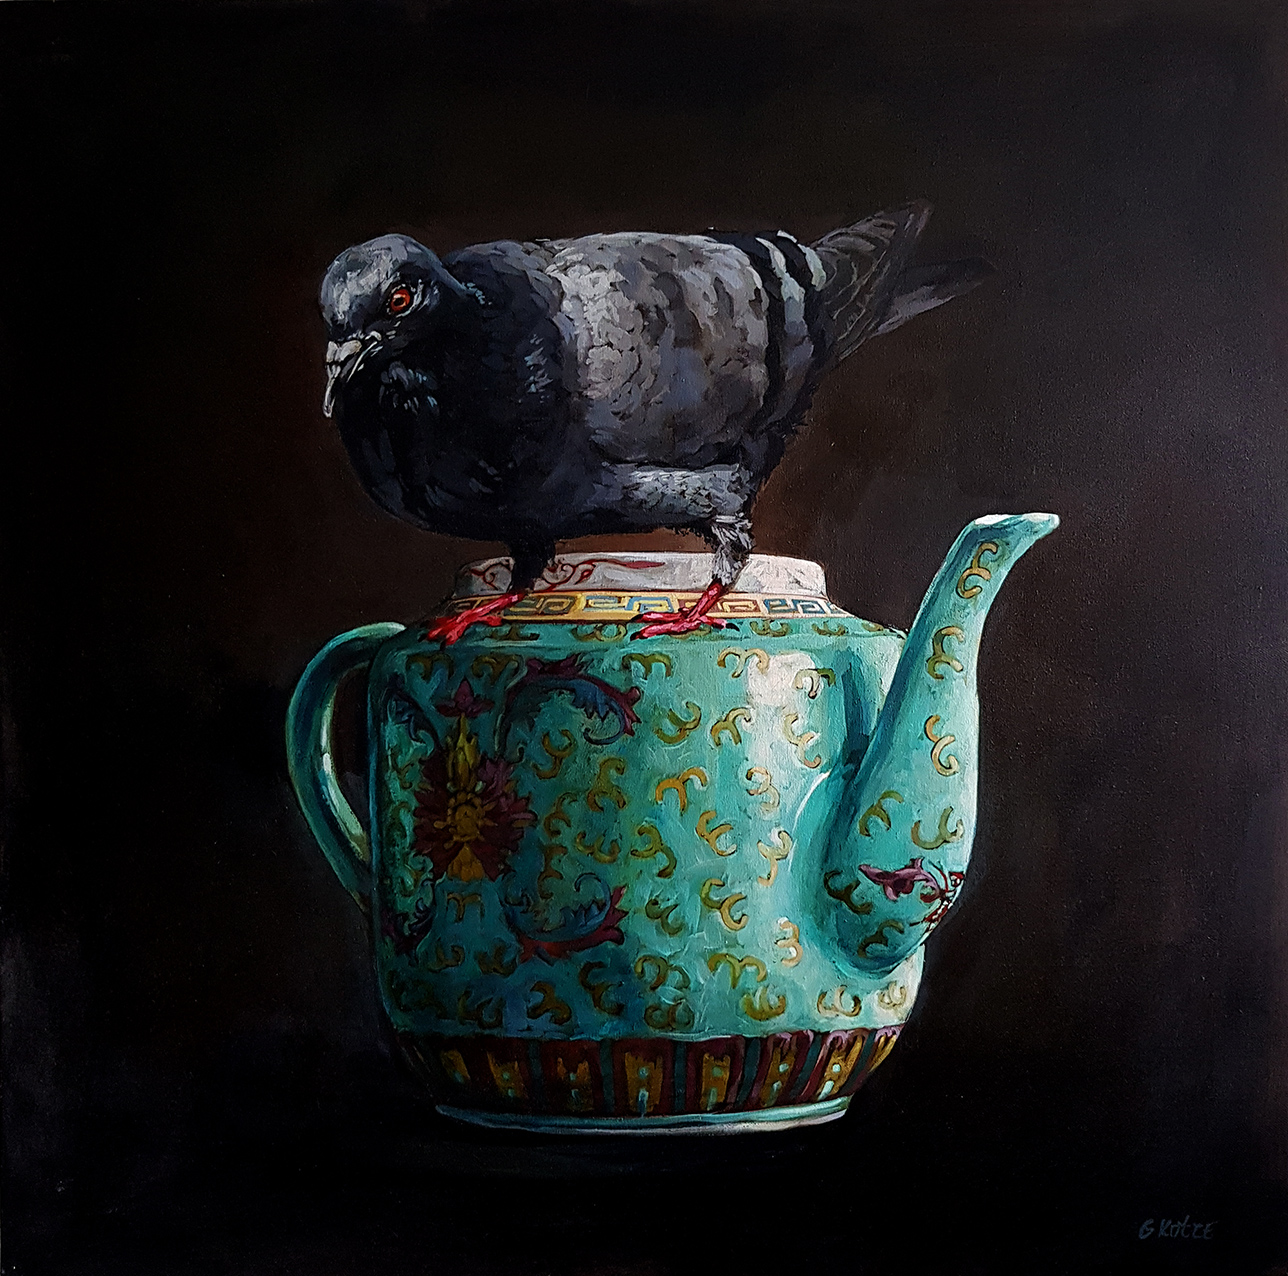 Grace_Kotze_The_Pigeon_and_the_Chinese_Tea_pot_80_x_80_x_4cm_Acrylic_on_Canvas_2017_net